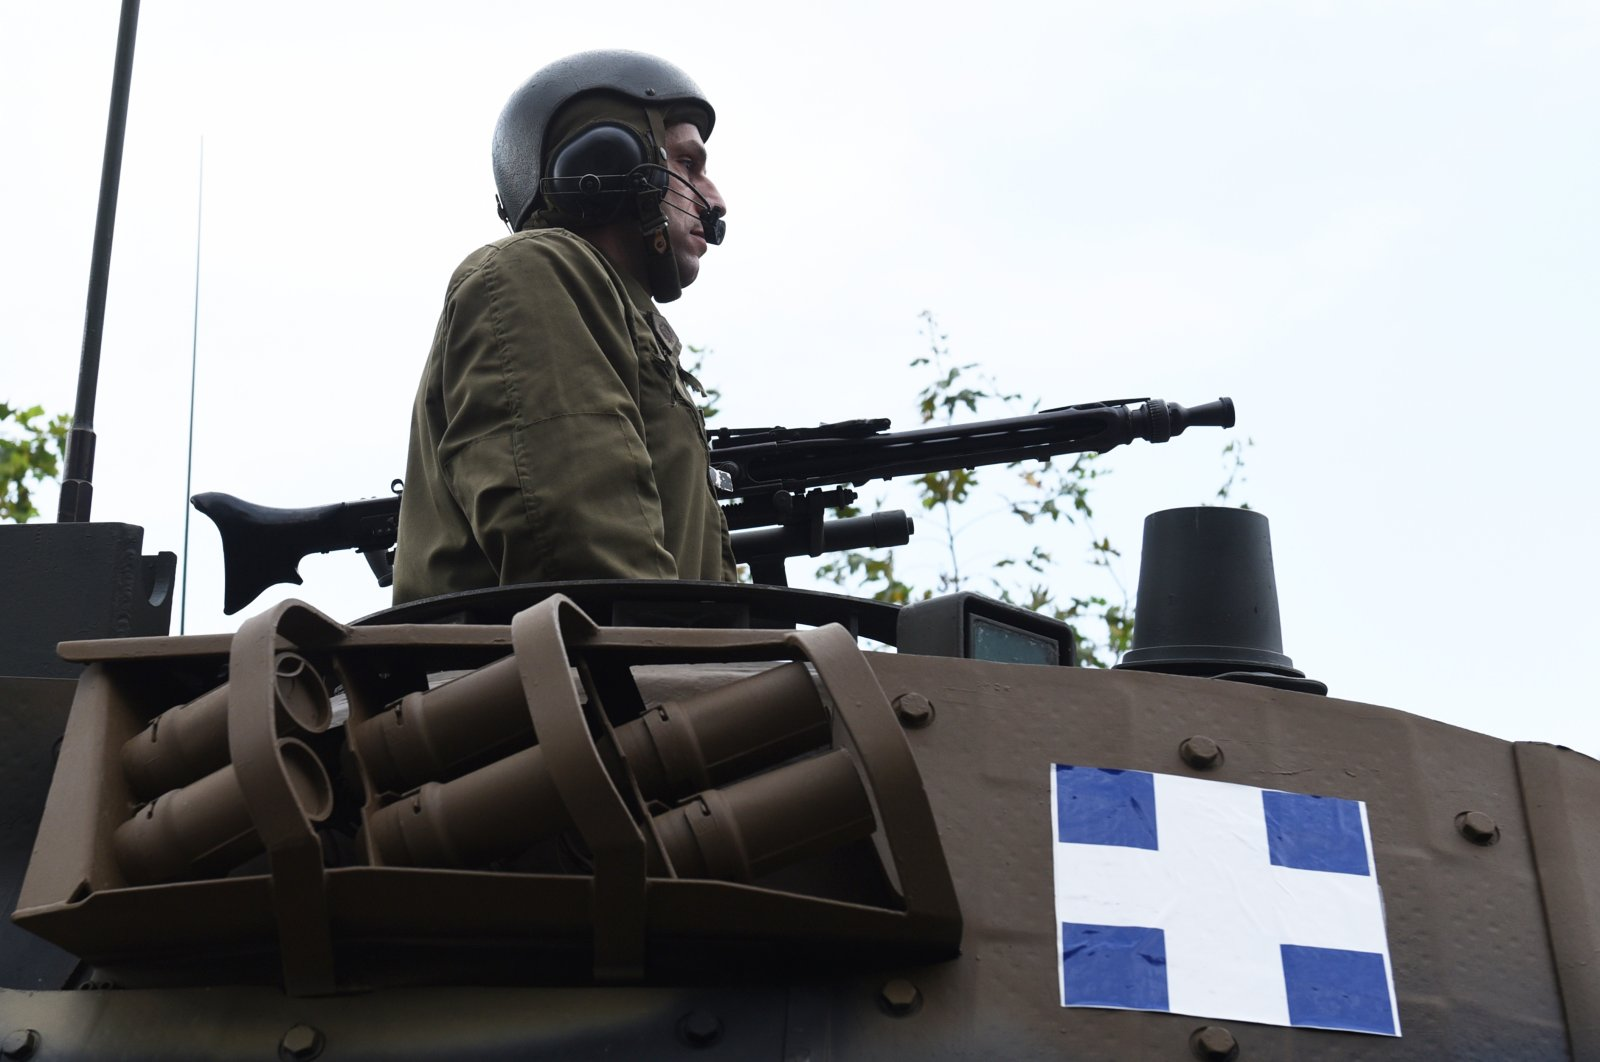 In this Oct. 28, 2015 file photo, a gunner atop a tank parades through the streets of the northern port city of Thessaloniki, Greece during a military parade. (AP File Photo)